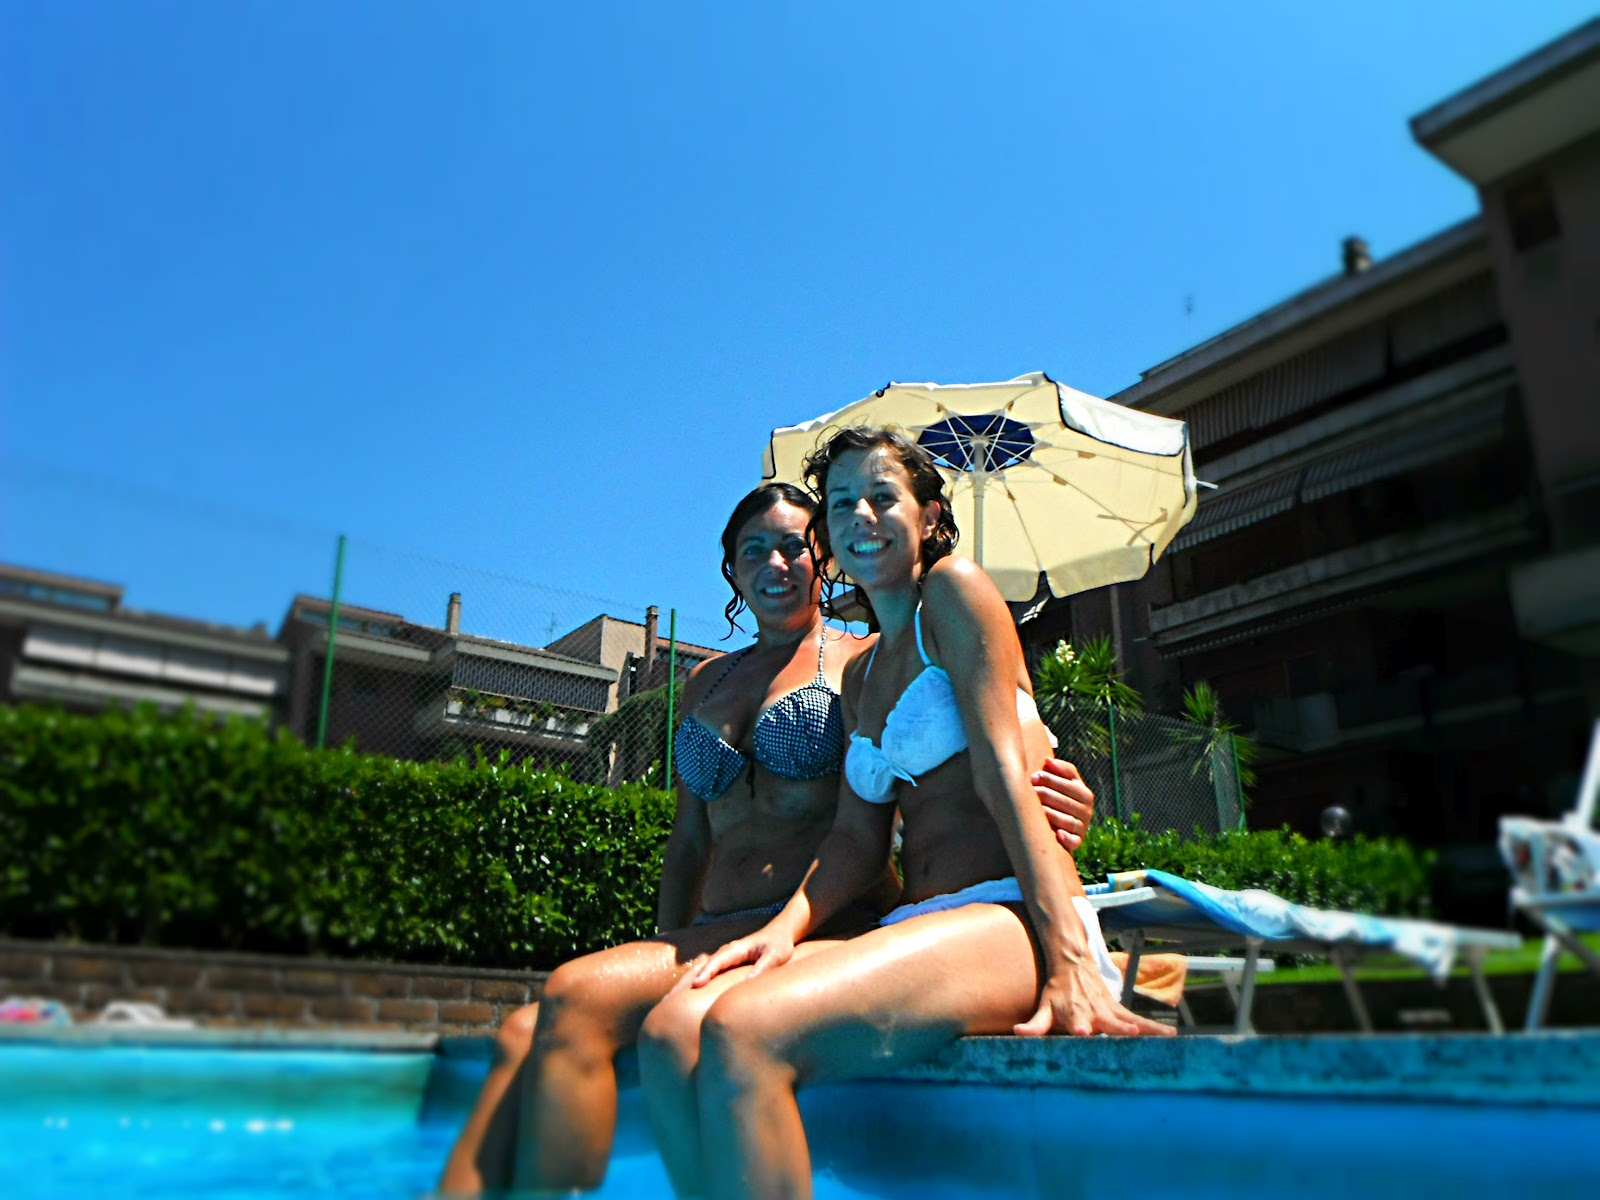 http://s-fashion-avenue.blogspot.it/2012/09/my-summer-with-friends.html